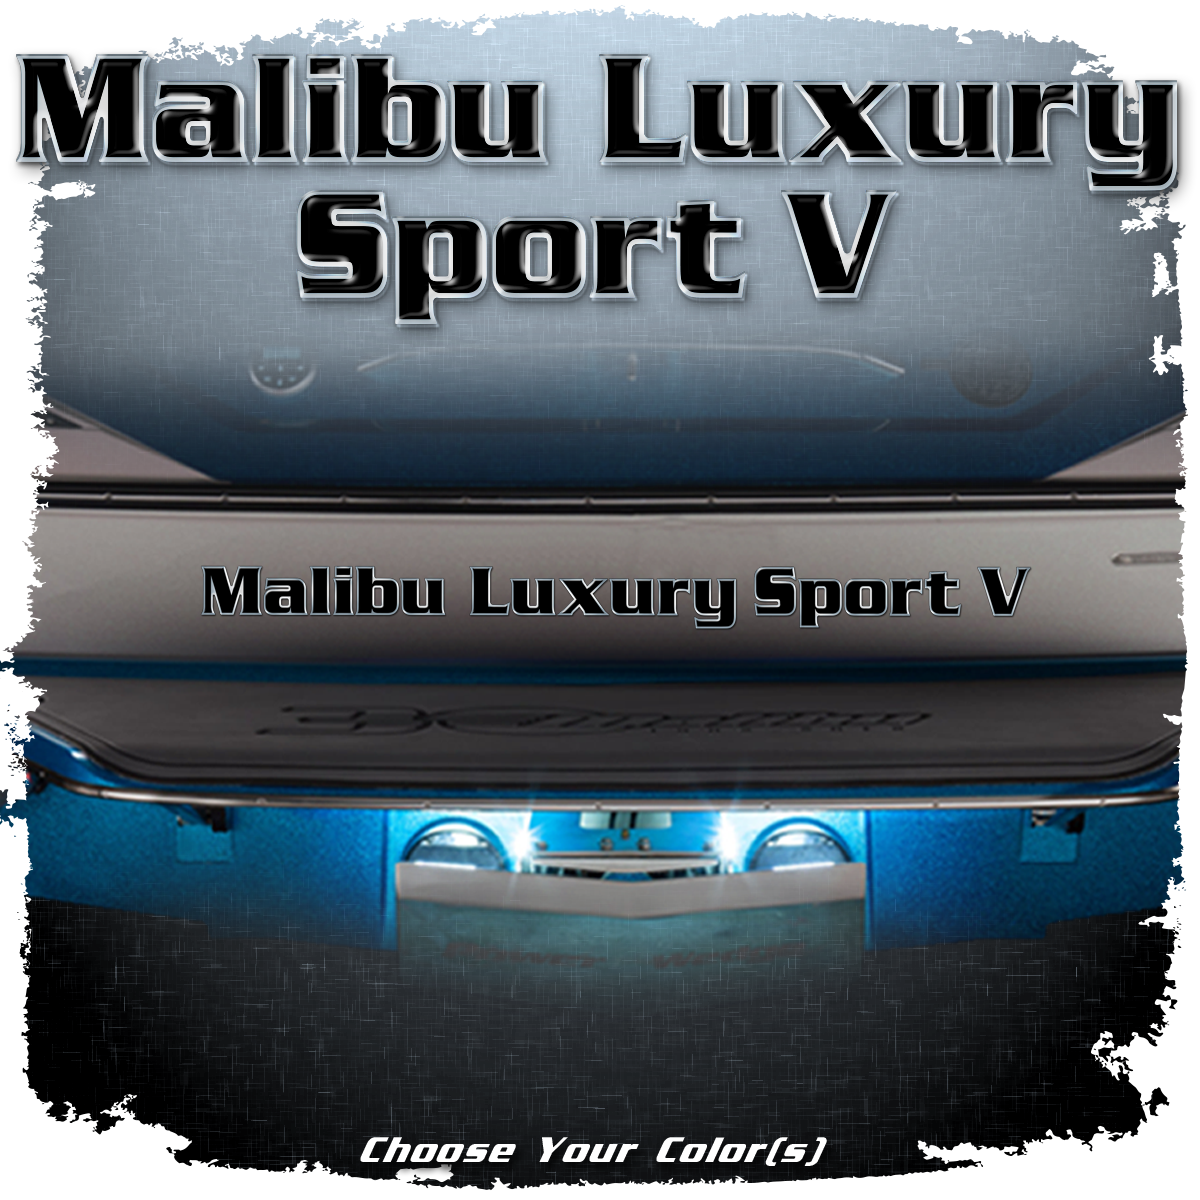 Malibu Luxury Sport V Domed Decal, Choose Your Color(s)